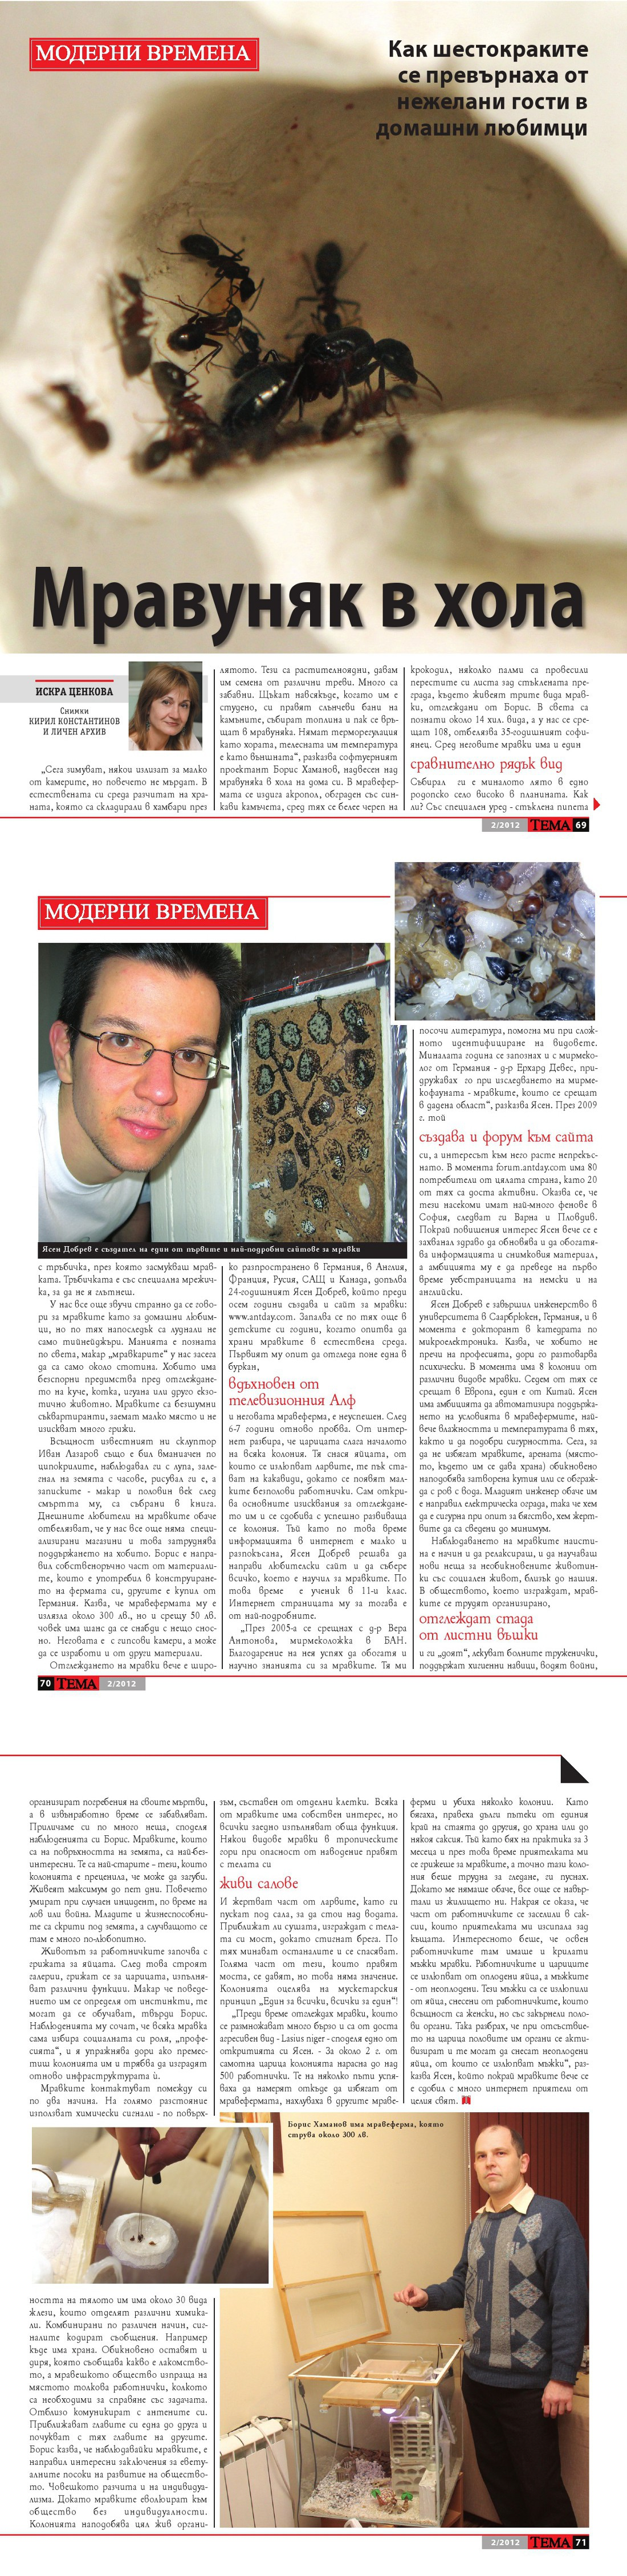 Article in the magazine TEMA by Iskra Tsenkova, 14/01/2012